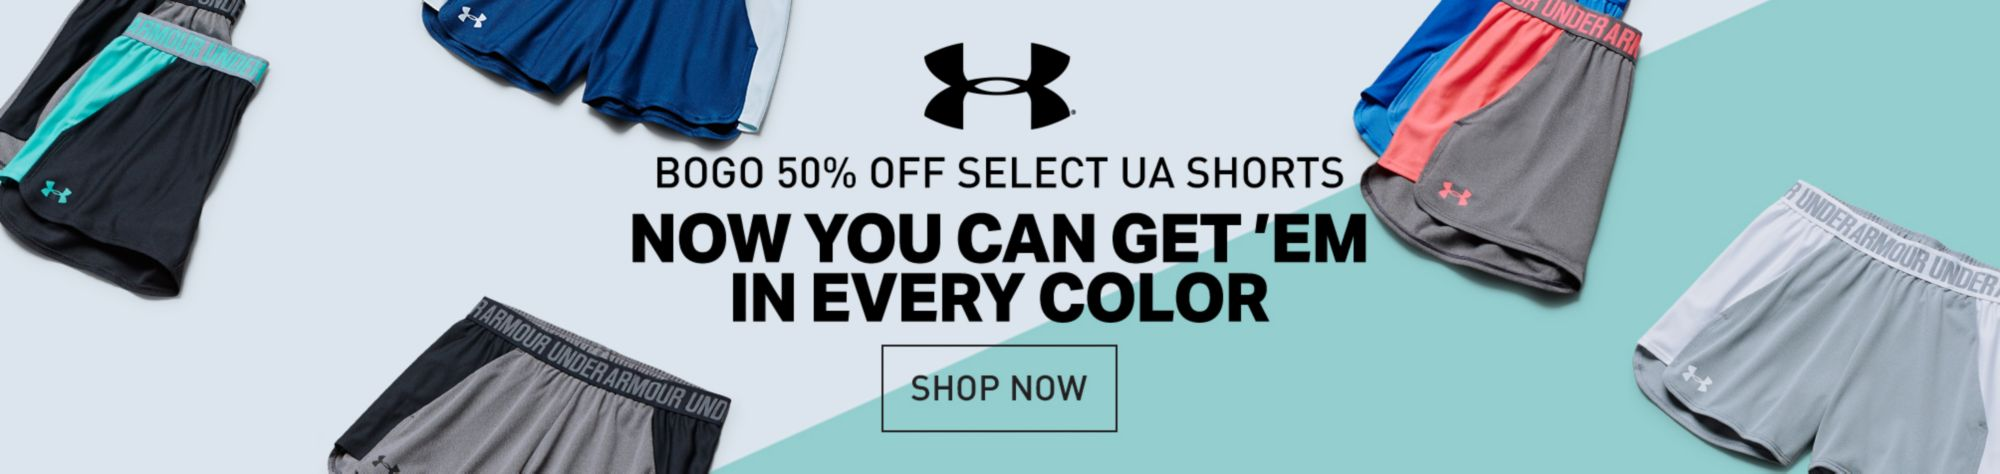 Shop Women's Under Armour Shorts